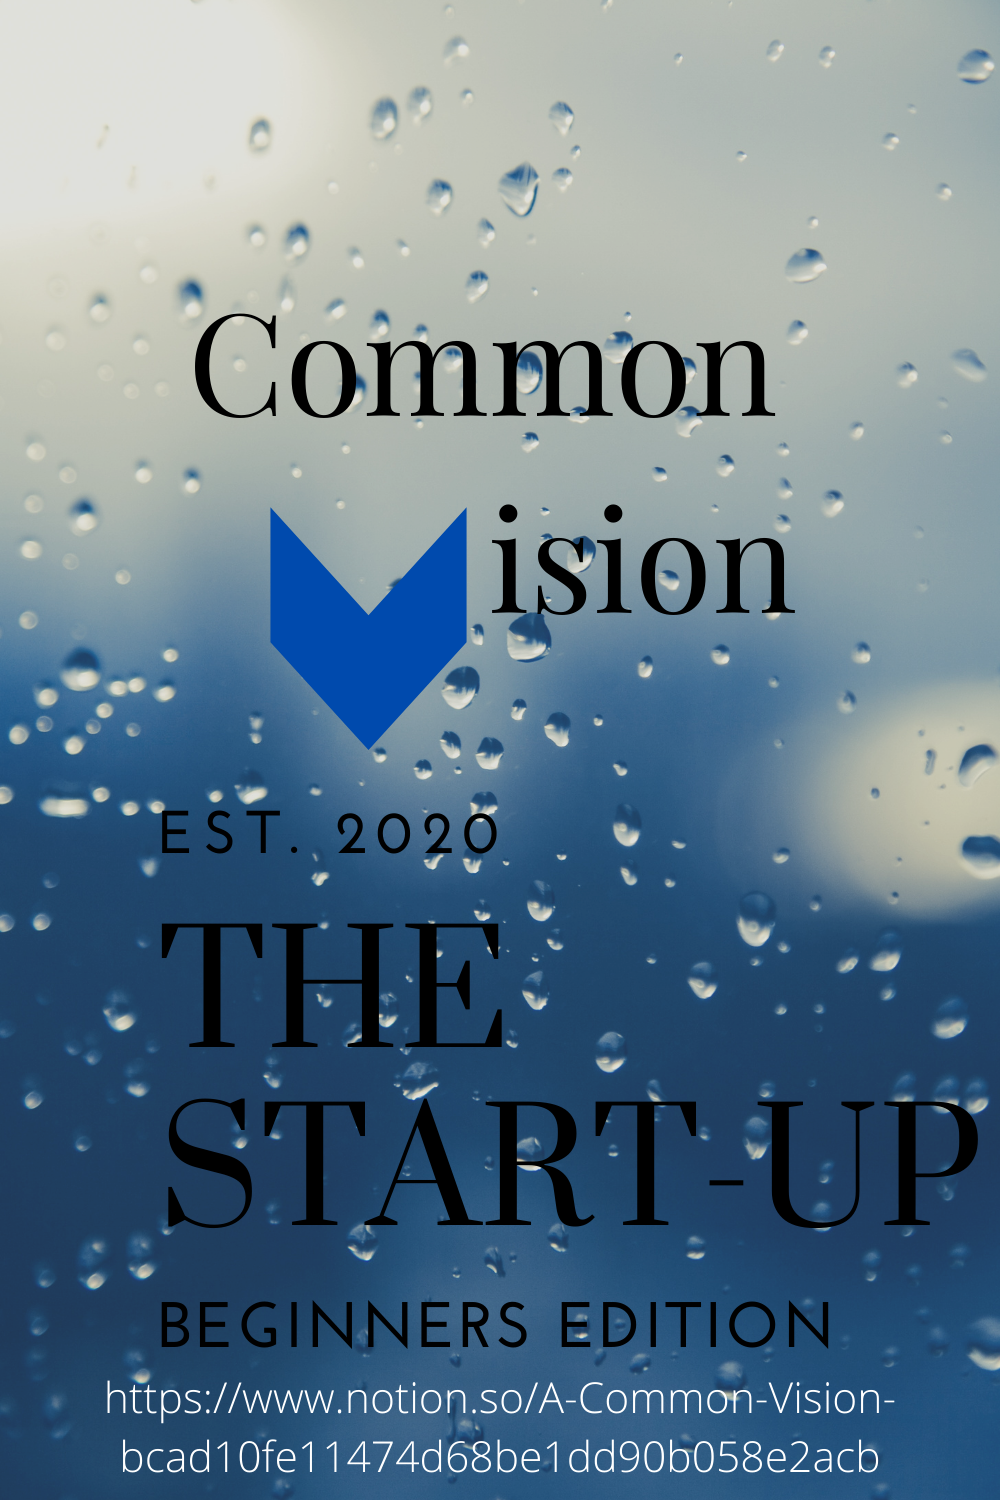 A Common Vision Vision And Mission Statement Vision Statement Visions